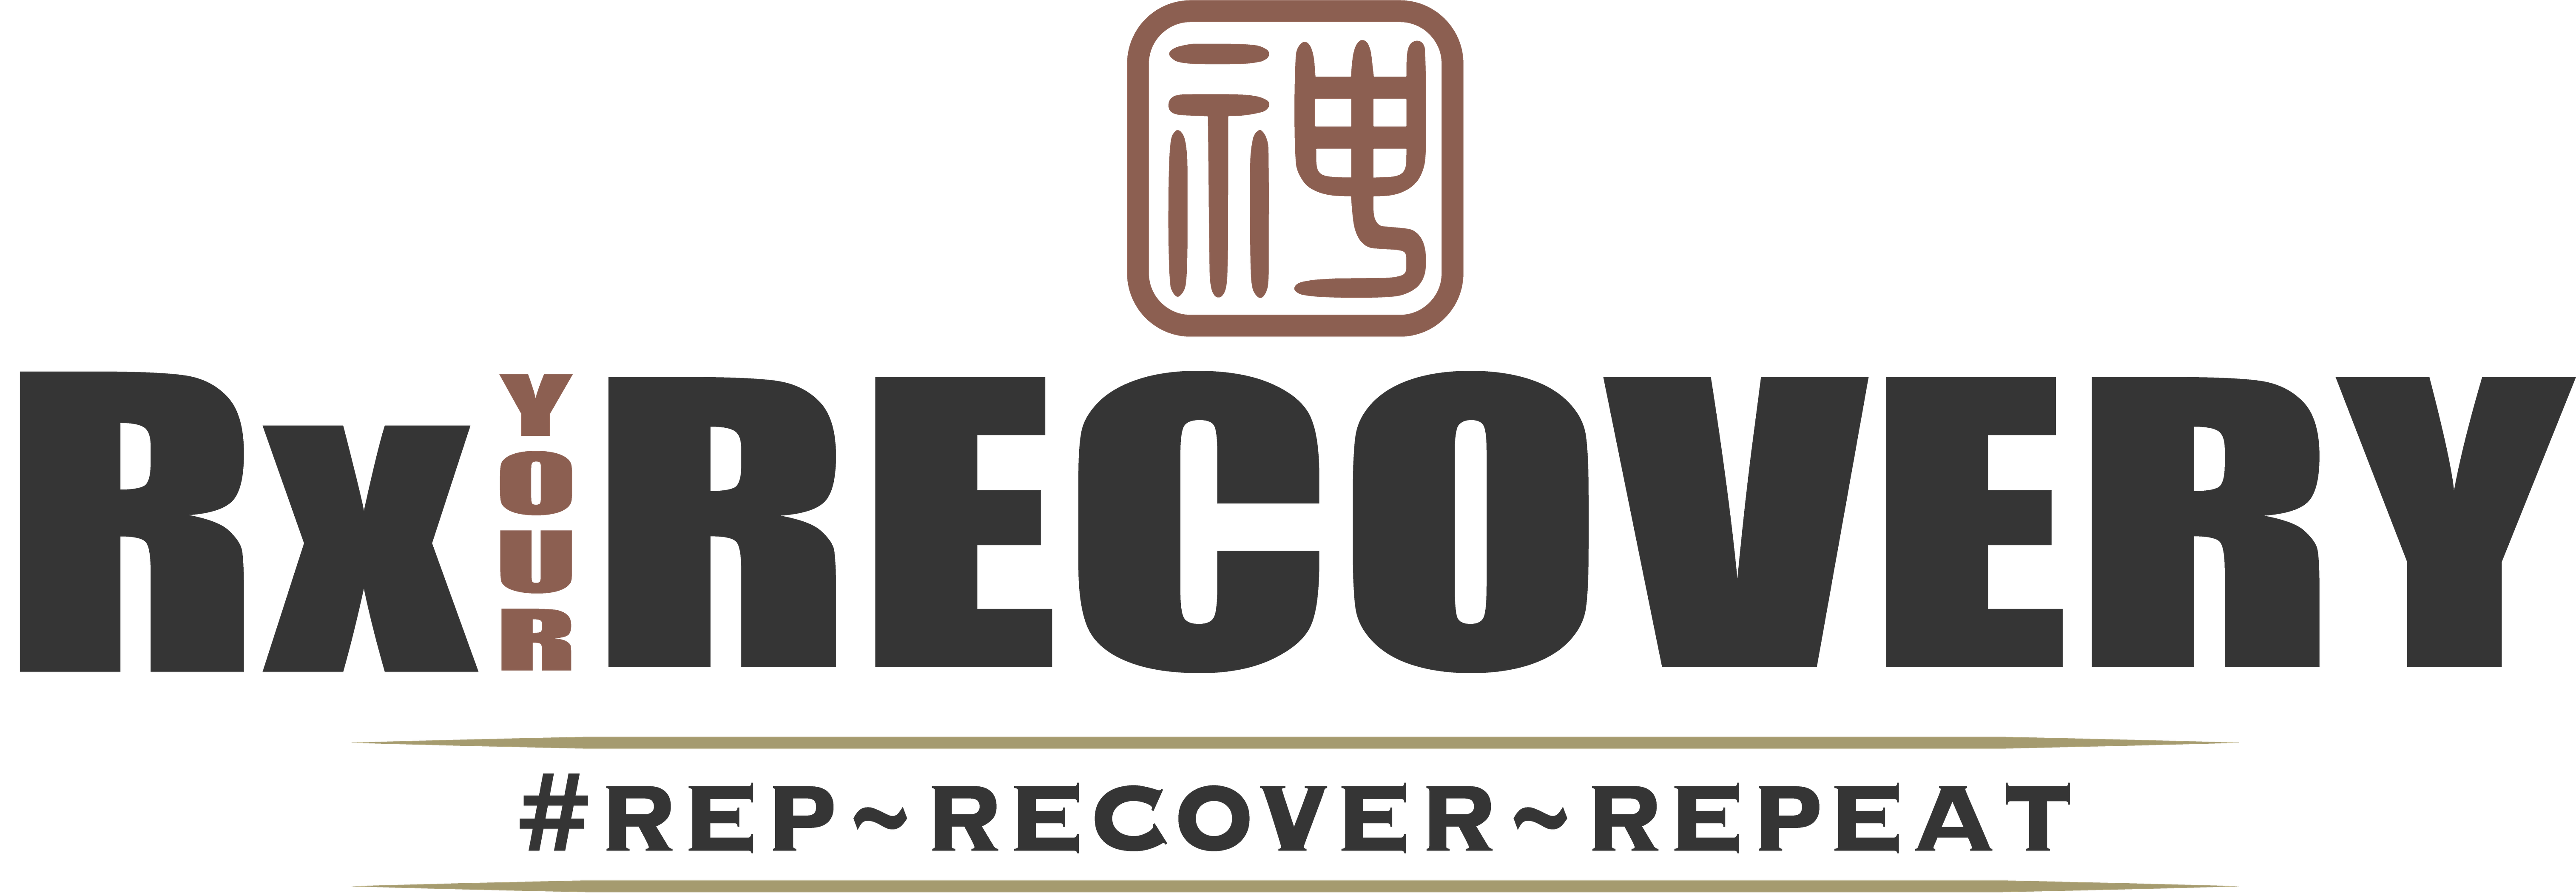 RxRecovery Black